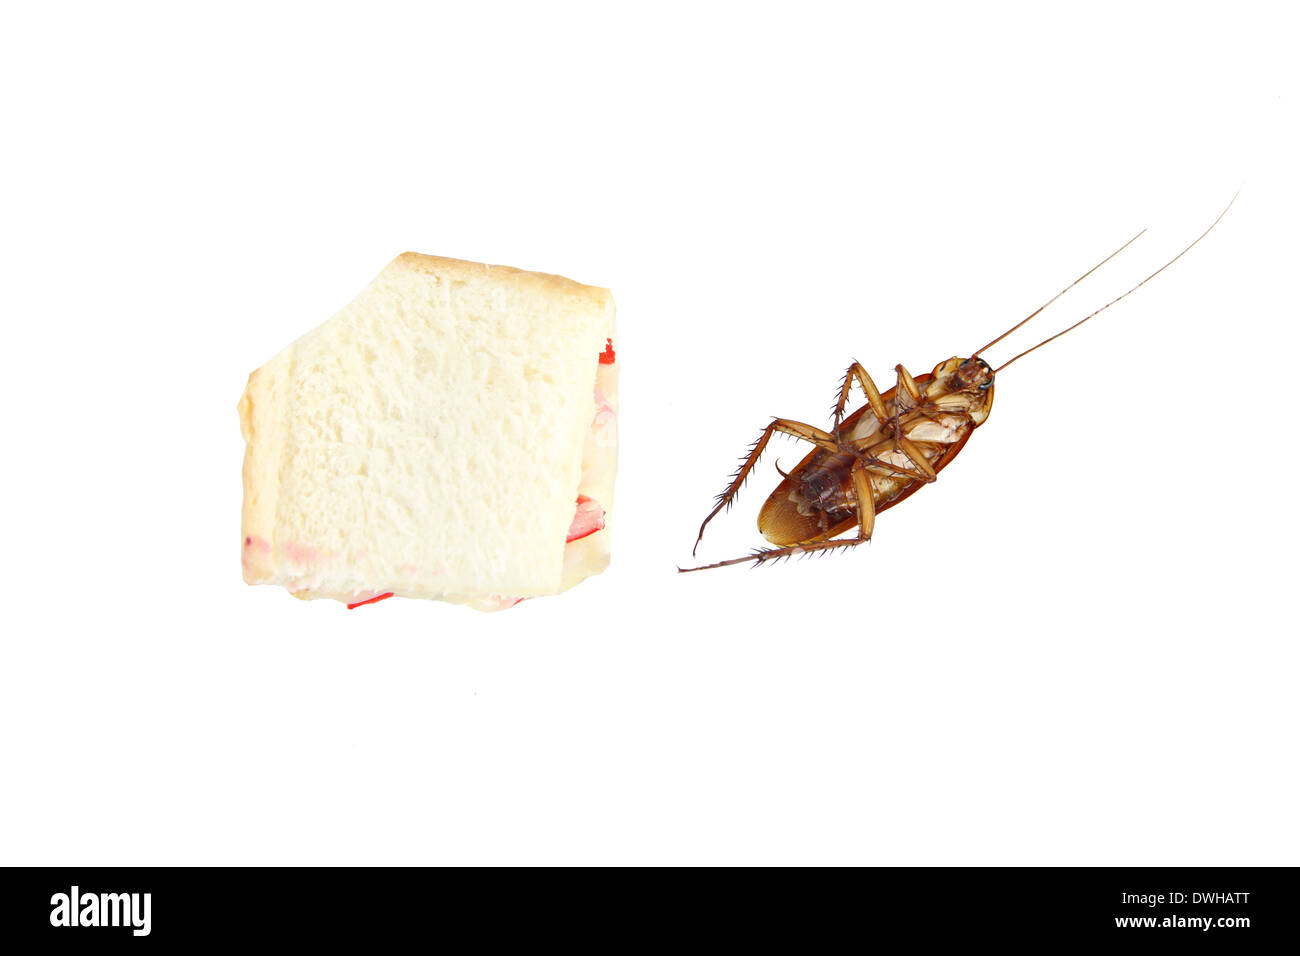 Eating Cockroach Stock Photos & Eating Cockroach Stock Images - Alamy